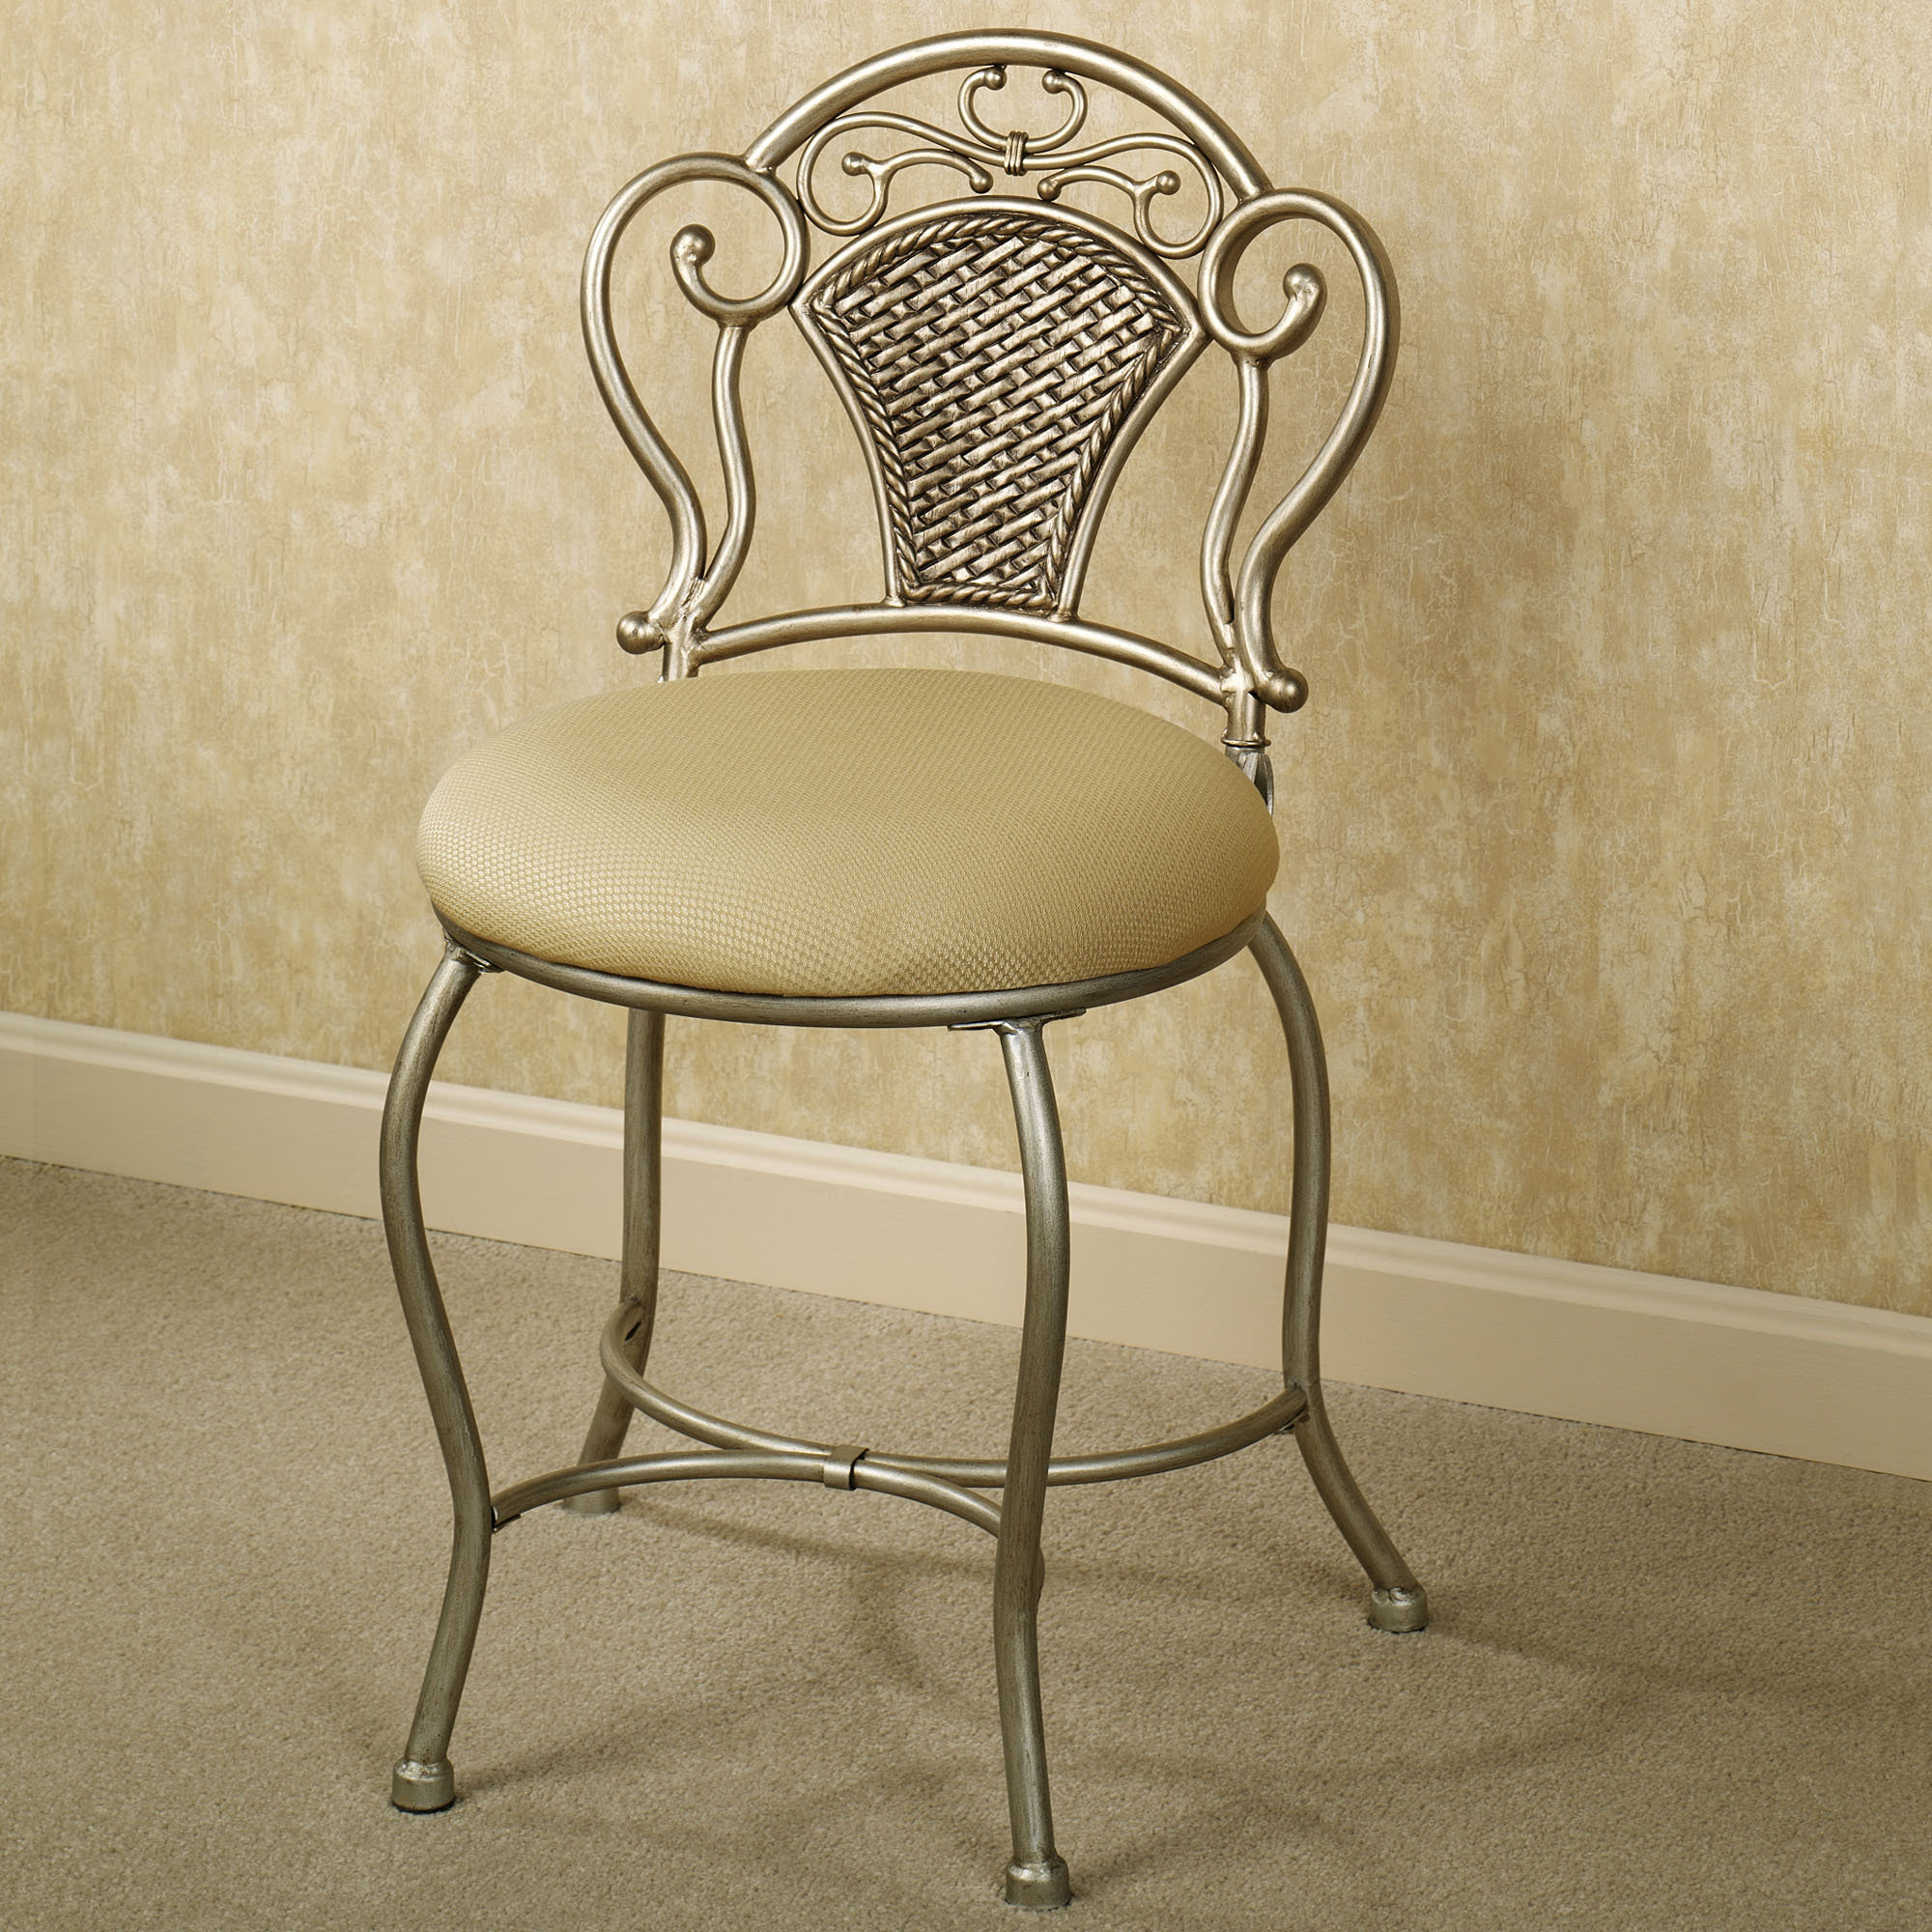 Enjoyable Vanity Chair With Back Design Options Homesfeed Caraccident5 Cool Chair Designs And Ideas Caraccident5Info